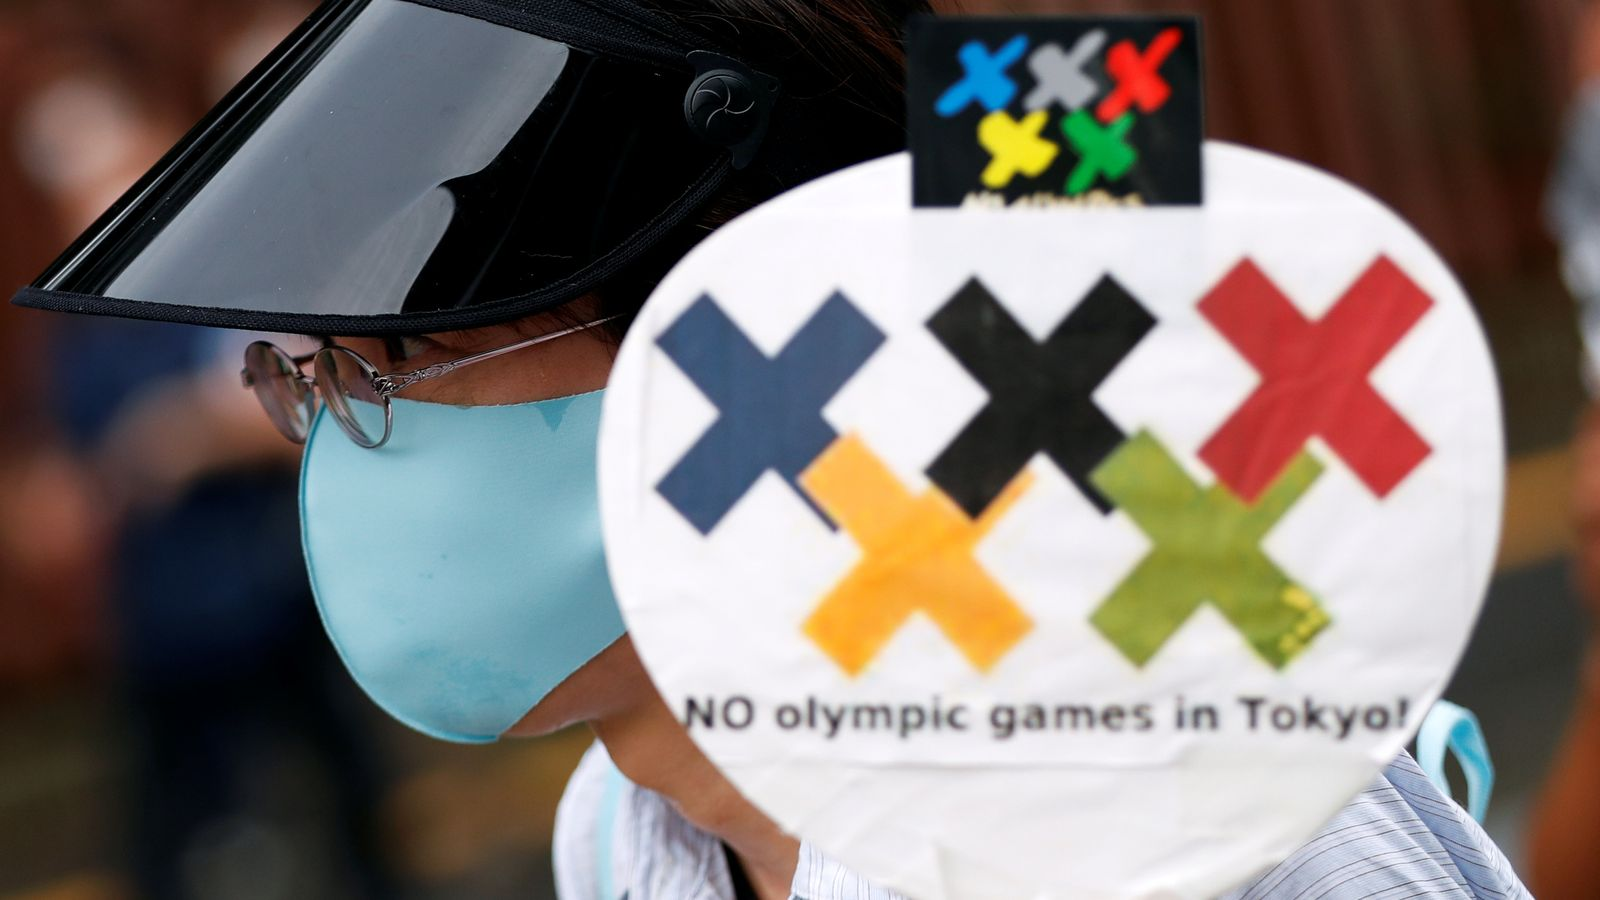 Tokyo daily cases hit six-month high amid fears Olympics could become super spreader event